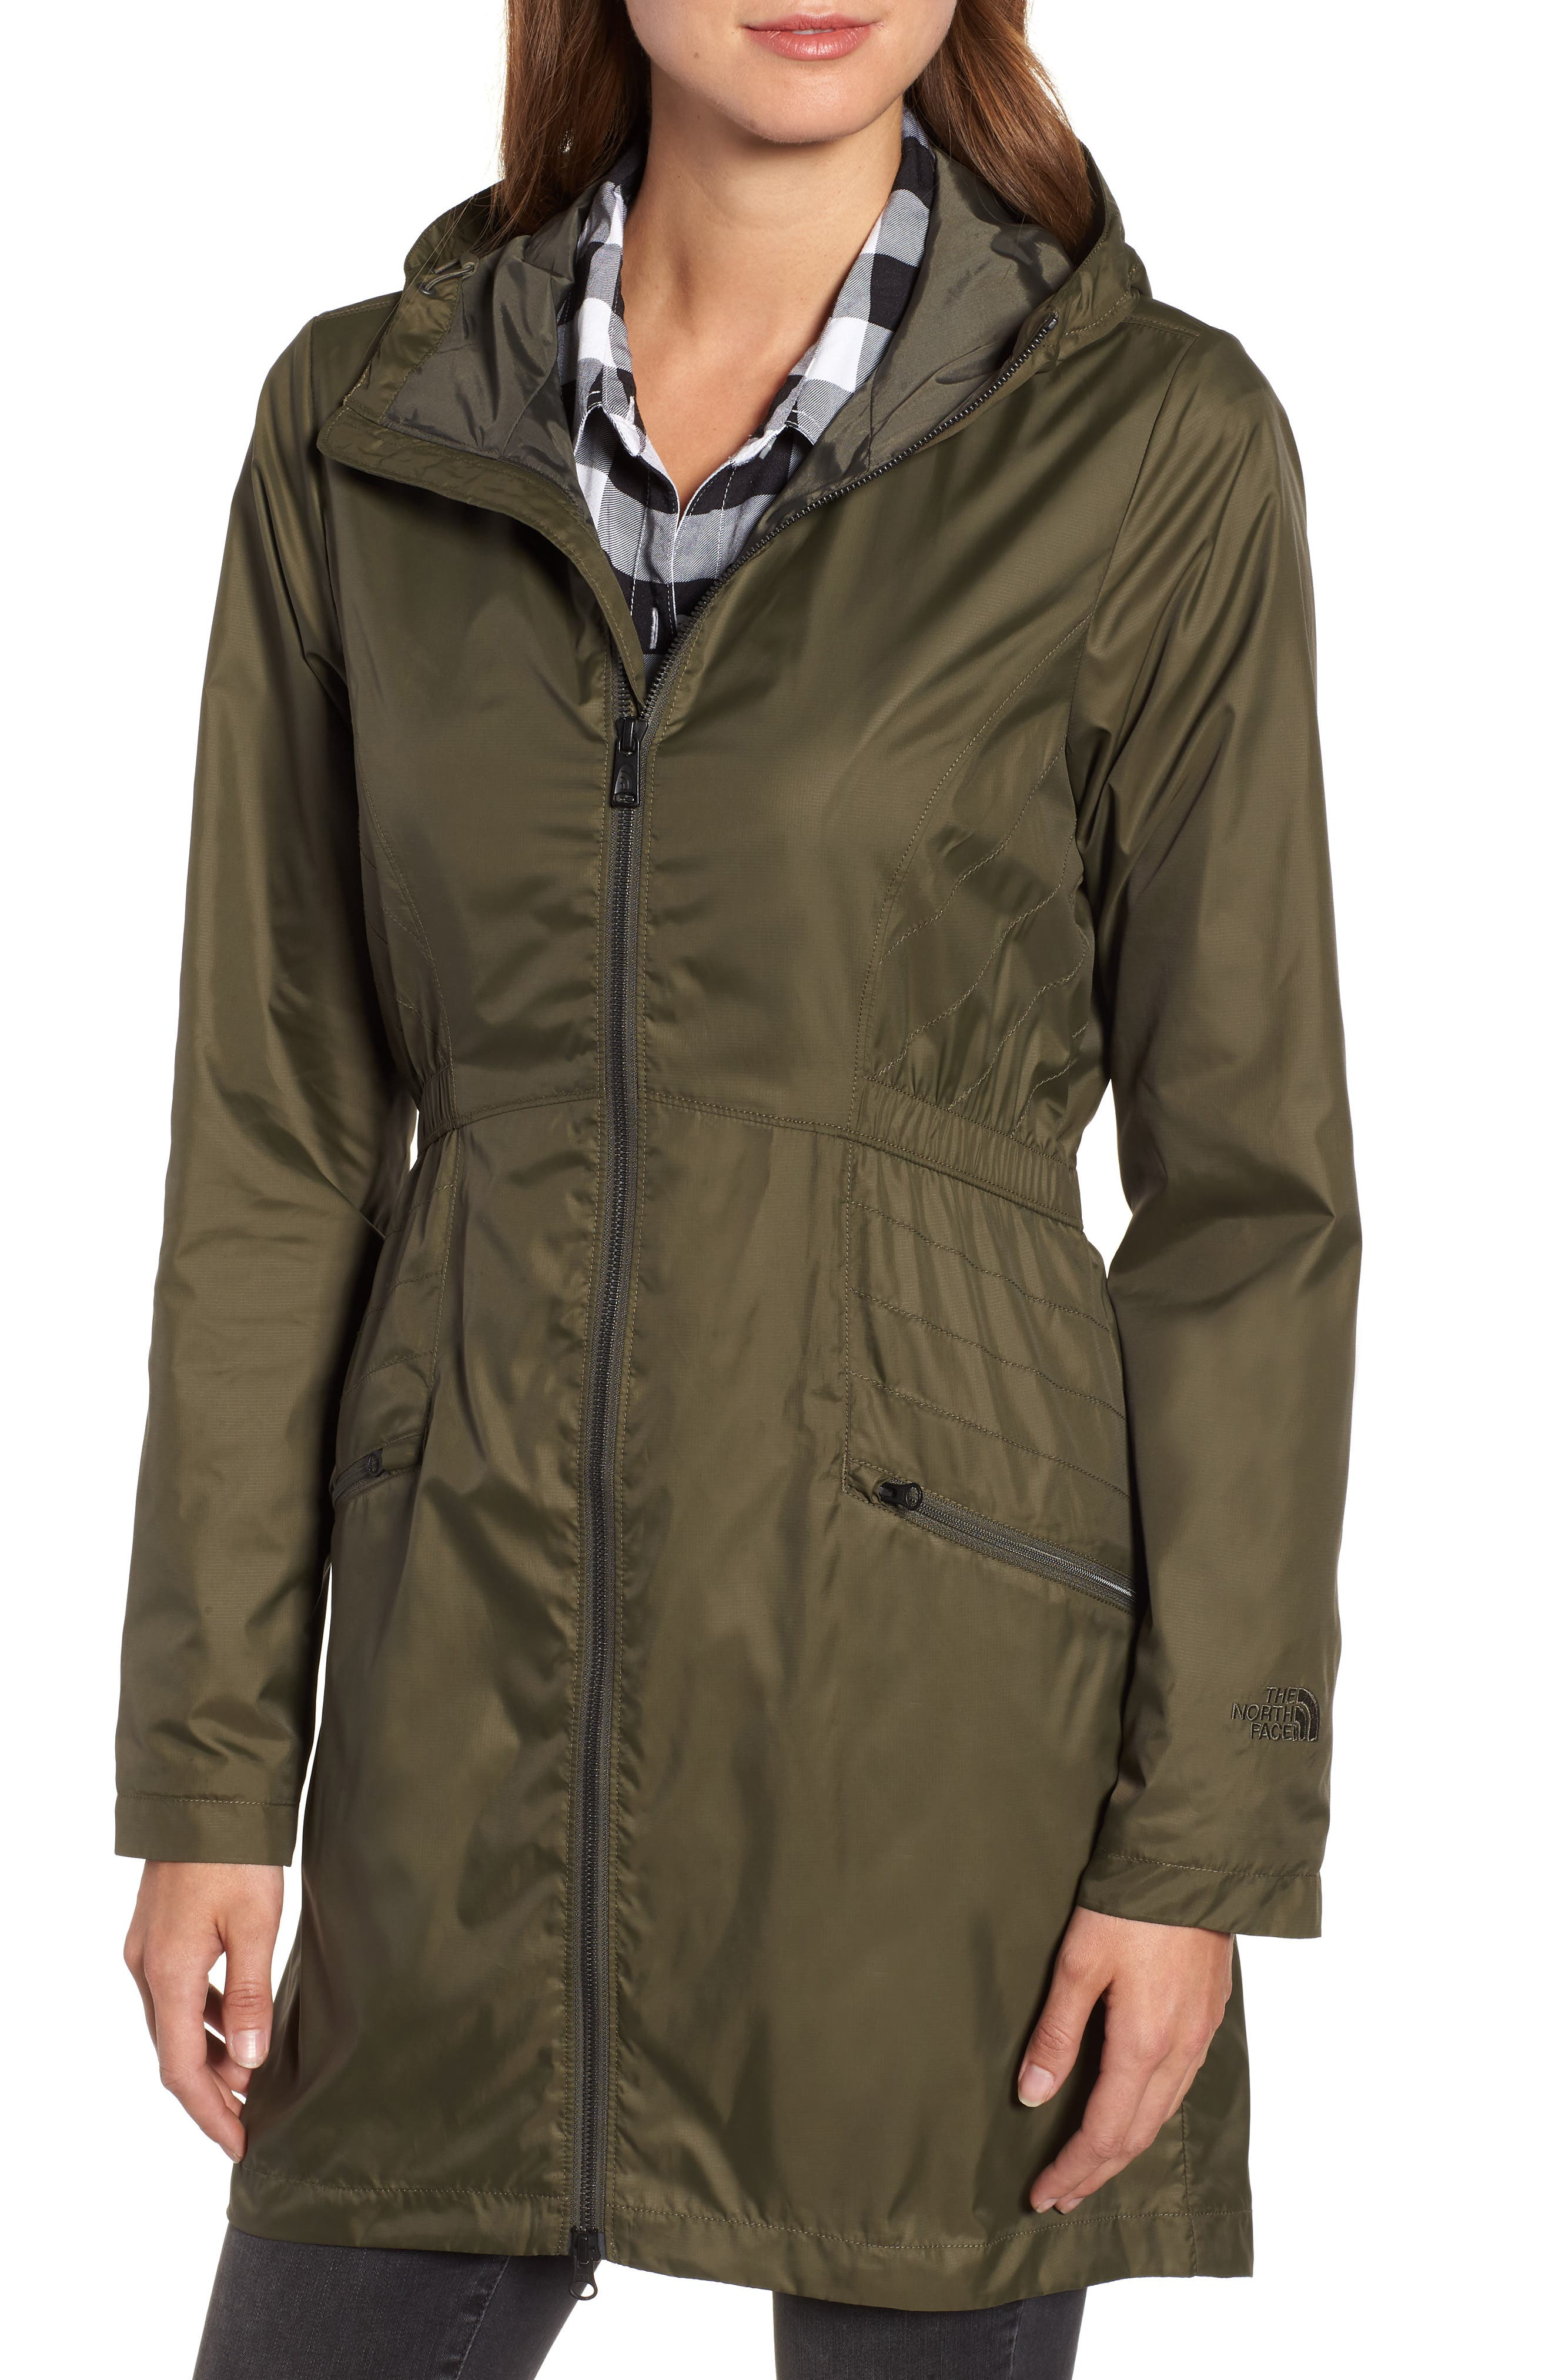 Rissy 2 Wind Resistant Jacket,                             Alternate thumbnail 4, color,                             NEW TAUPE GREEN